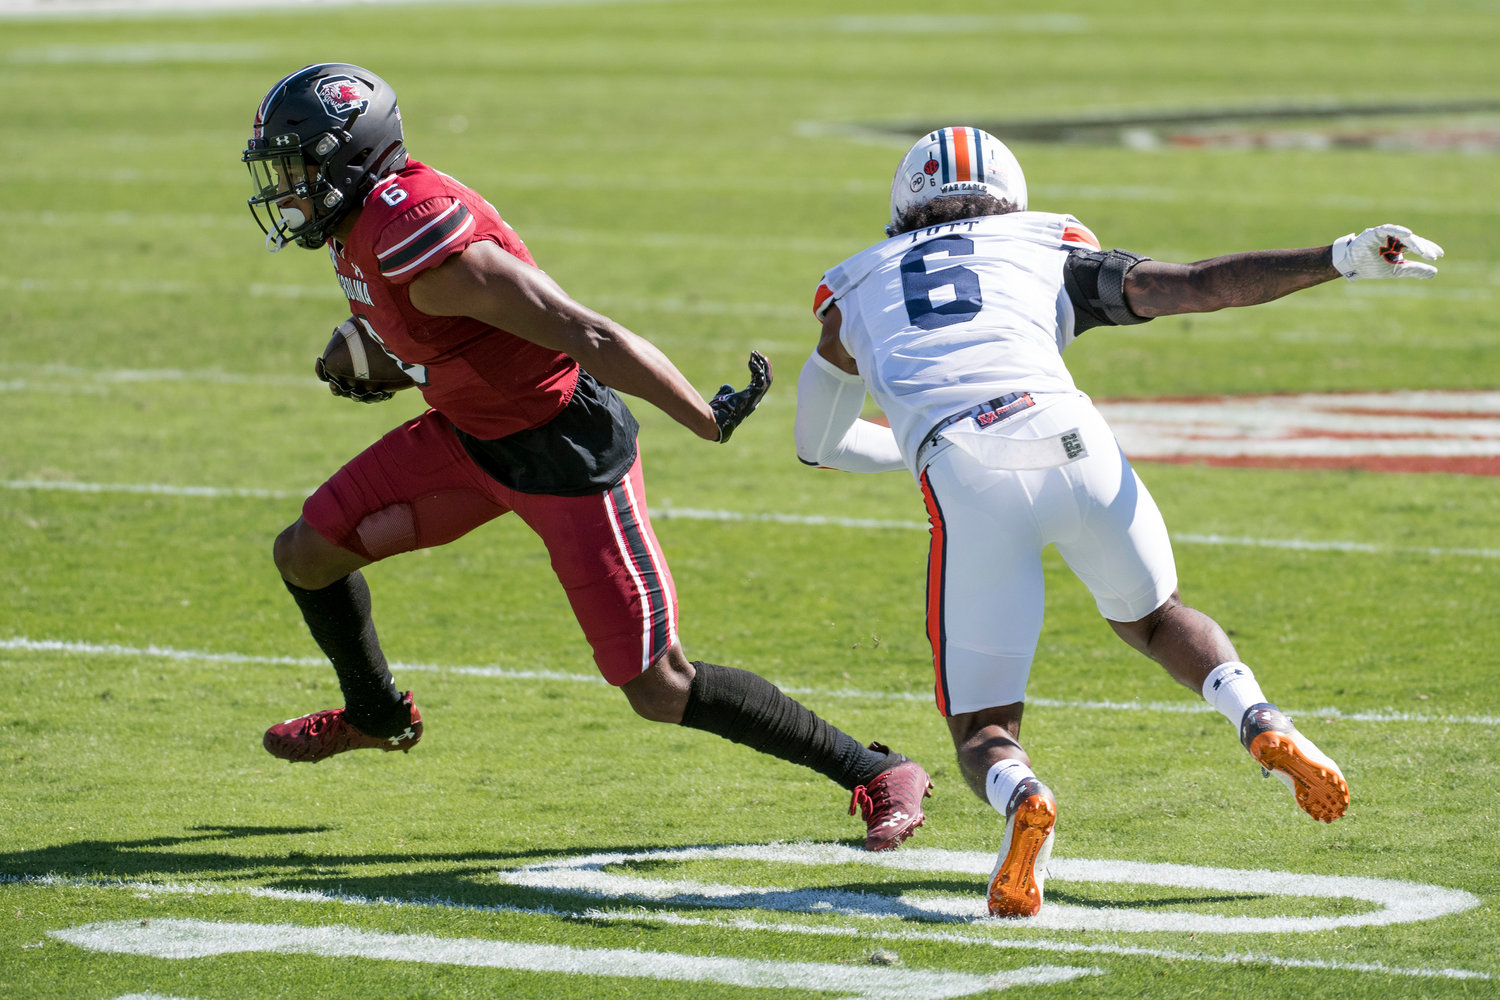 South Carolina wide receiver Josh Vann (6) runs with the ball against Auburn defensive back Christian Tutt (6) during the first half of an NCAA college football game Saturday, Oct. 17, 2020, in Columbia, S.C. (AP Photo/Sean Rayford)